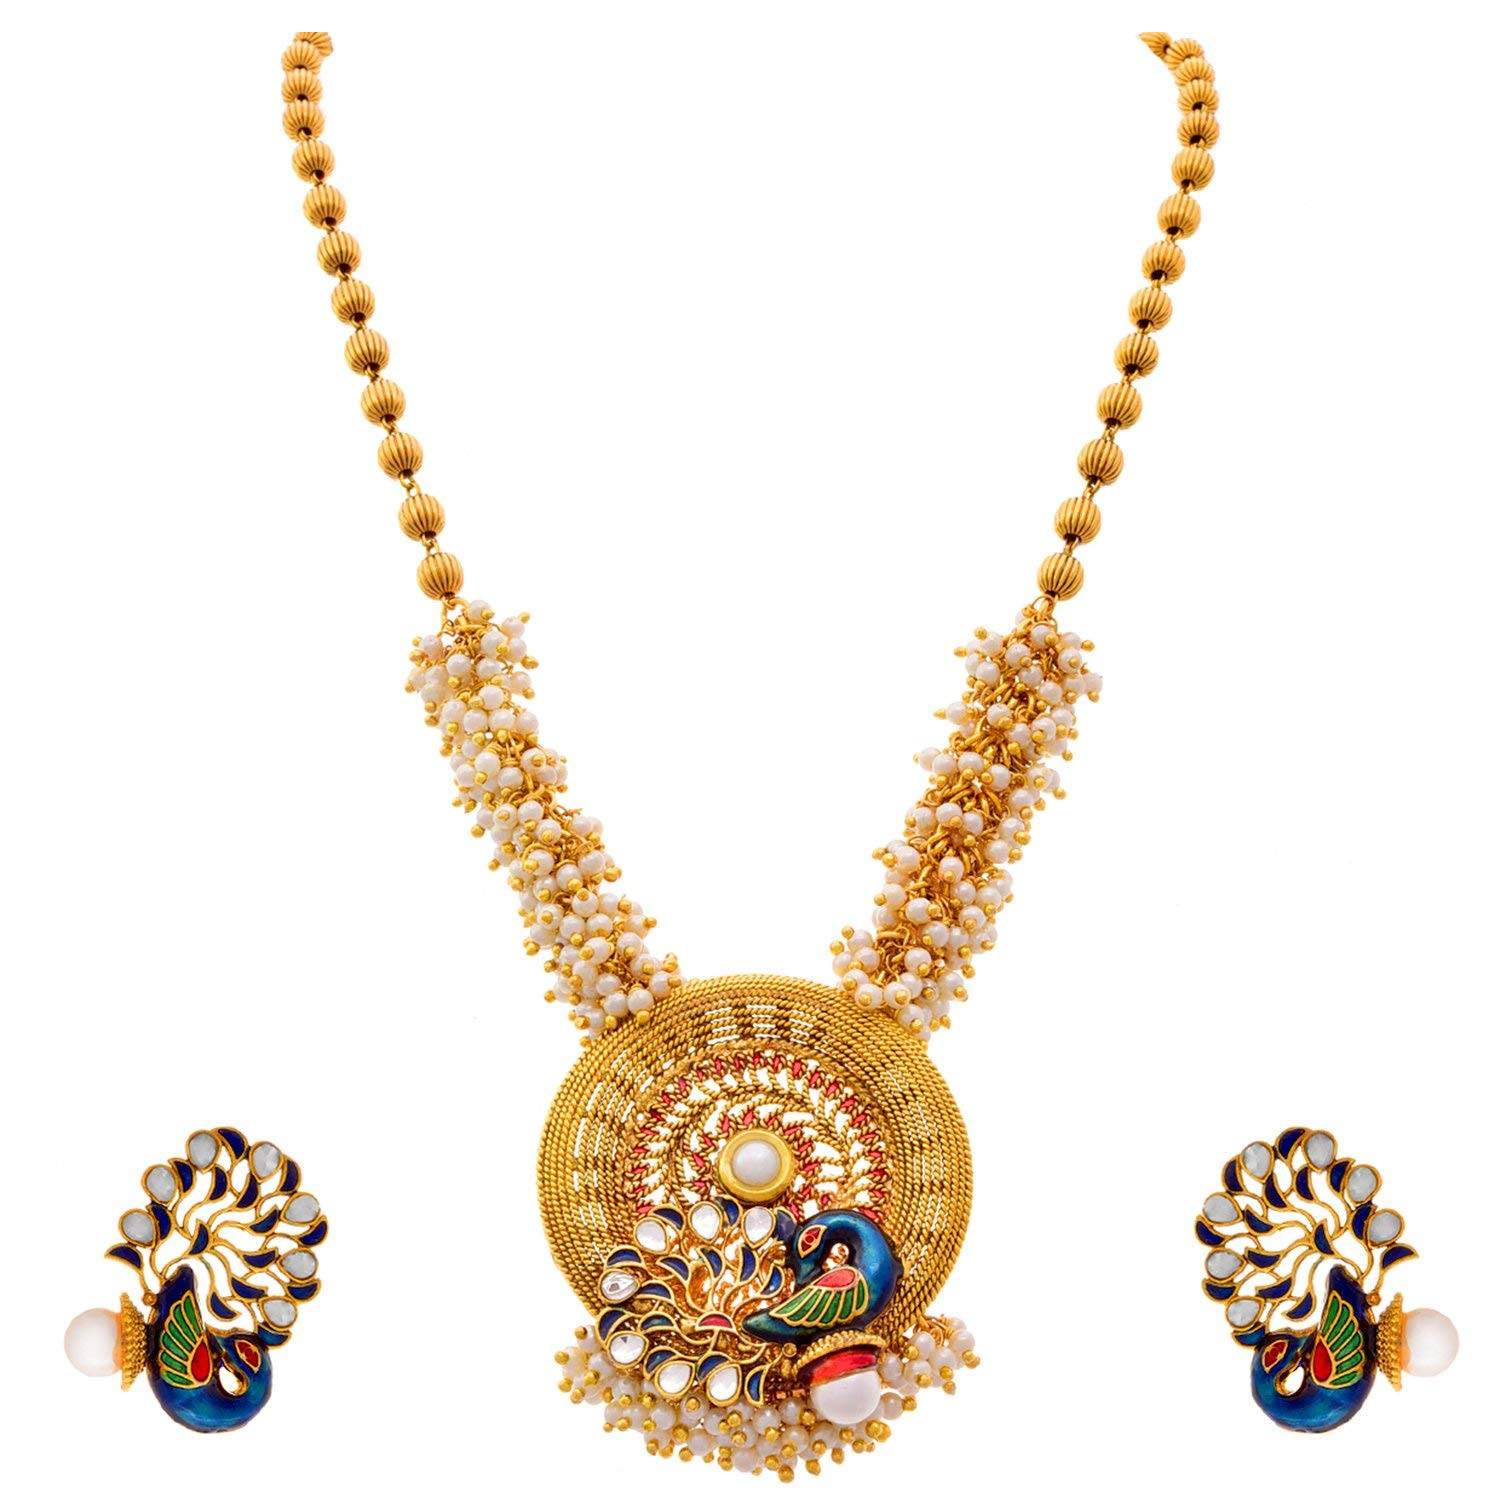 JFL - Traditional Ethnic One Gram Gold Plated Meenakari Peacock Pearls Designer Necklace Set with Earring for Women and Girls.